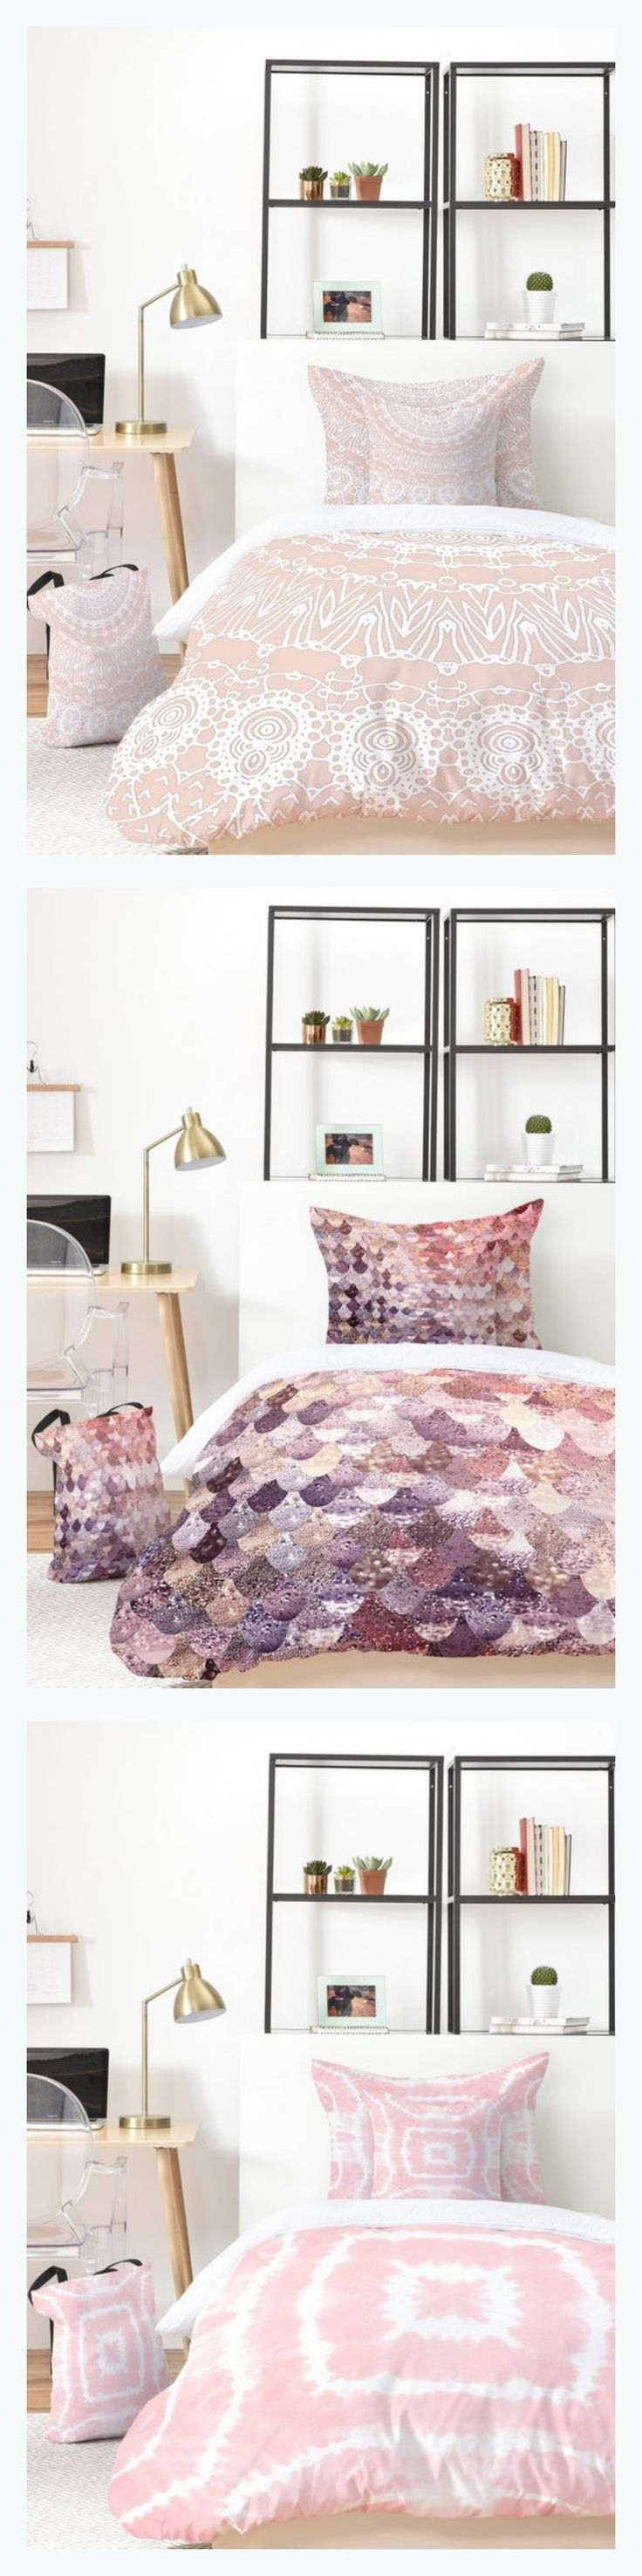 All fav blush rose ..... New duvets and home decor goods in your favourite pastel colors in my DenyDesigns shop - products starting at $19. Design Monika Strigel for @denydesigns